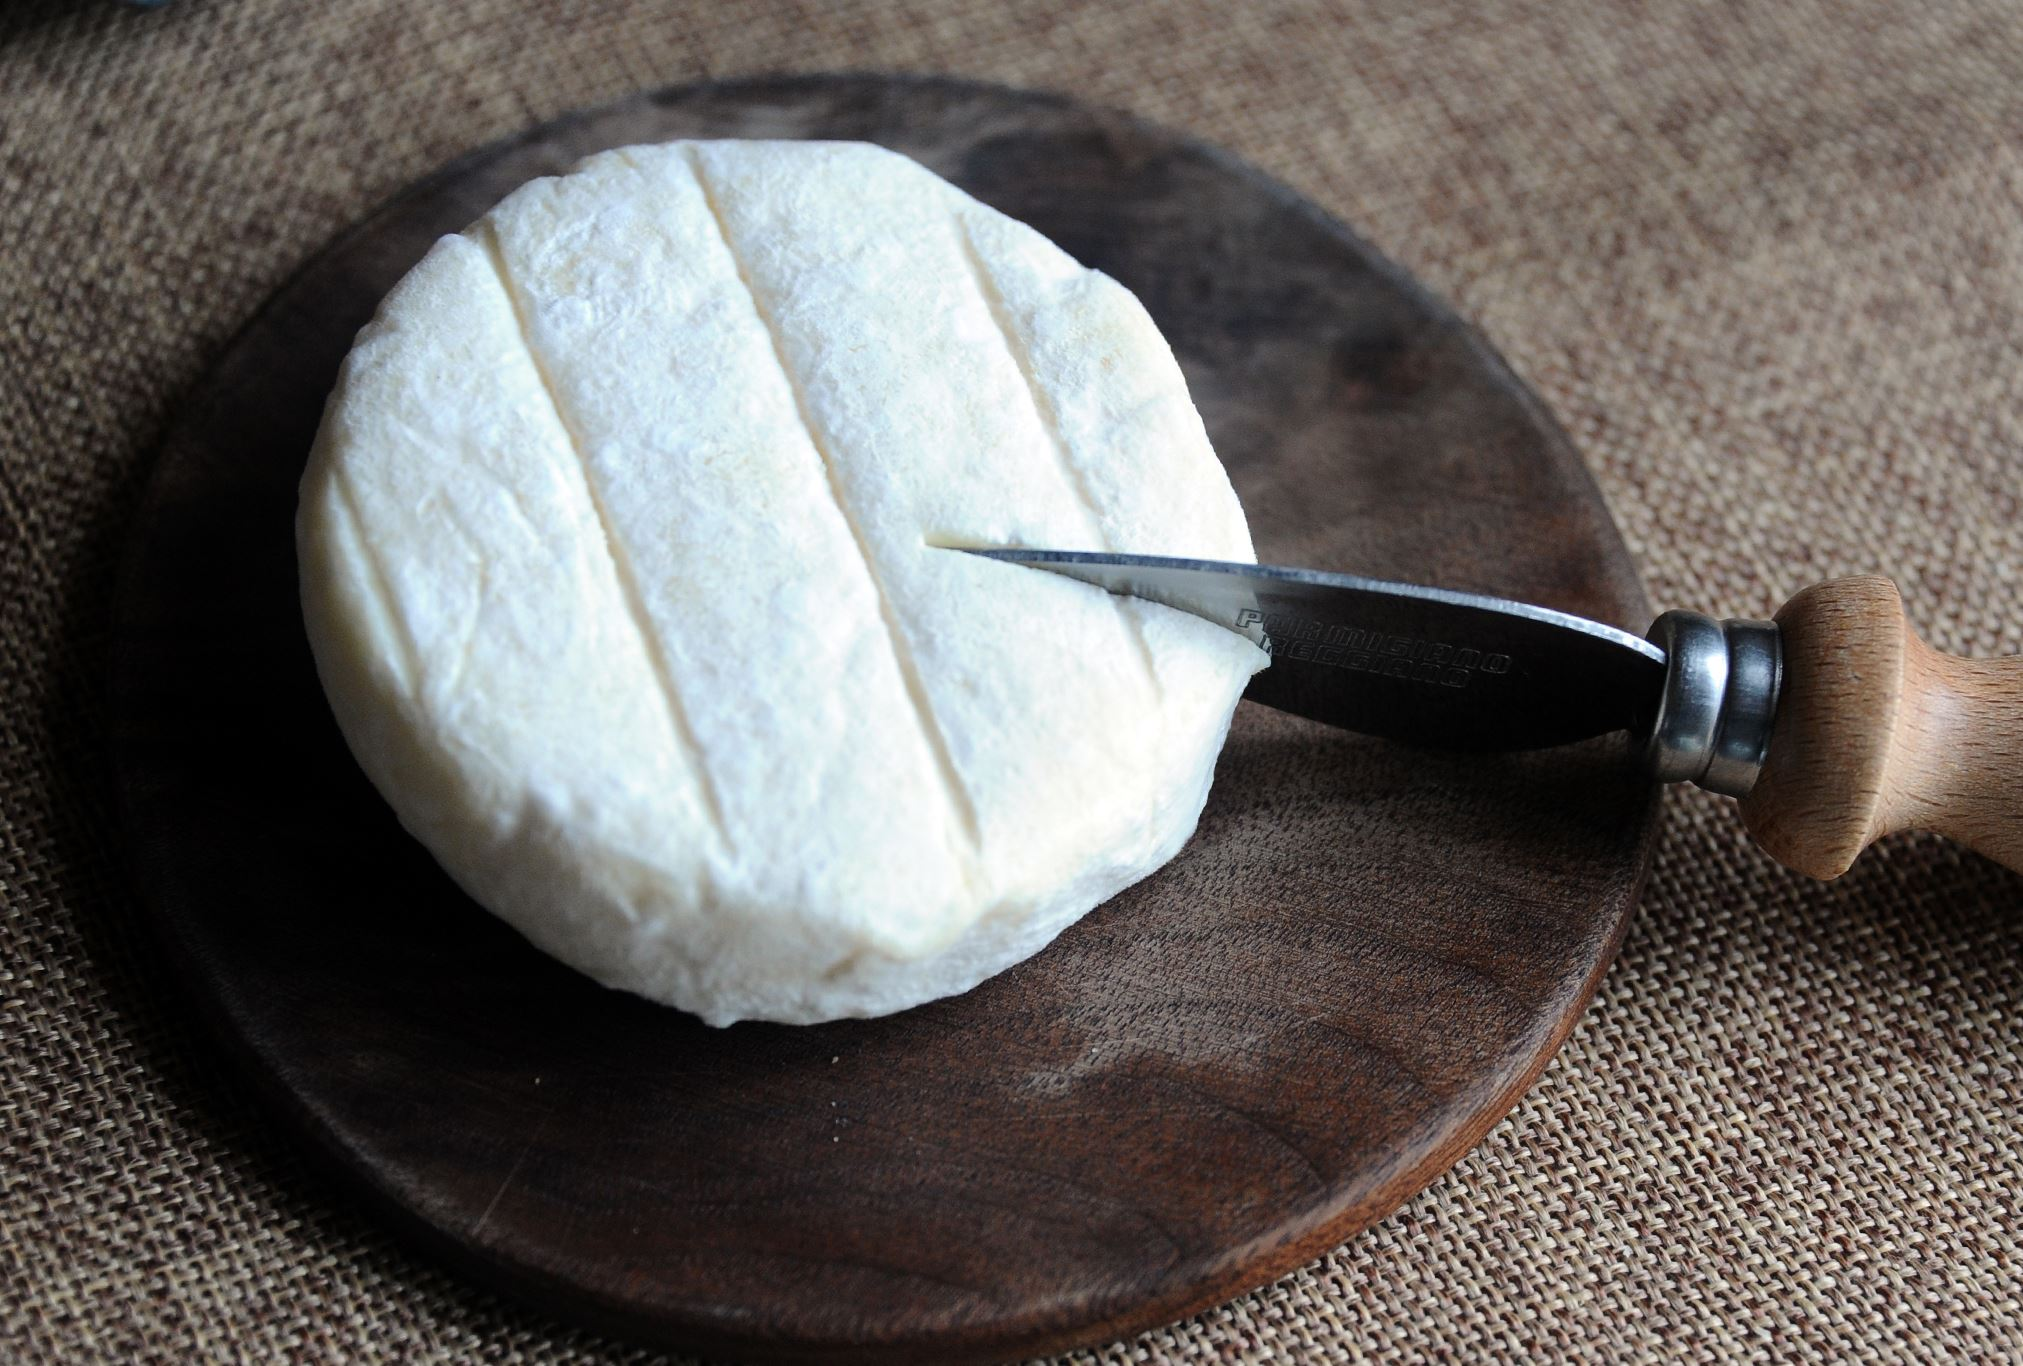 20140411CheeseMag03-2 Dragonfly, a white rind cheese made at Doe run.